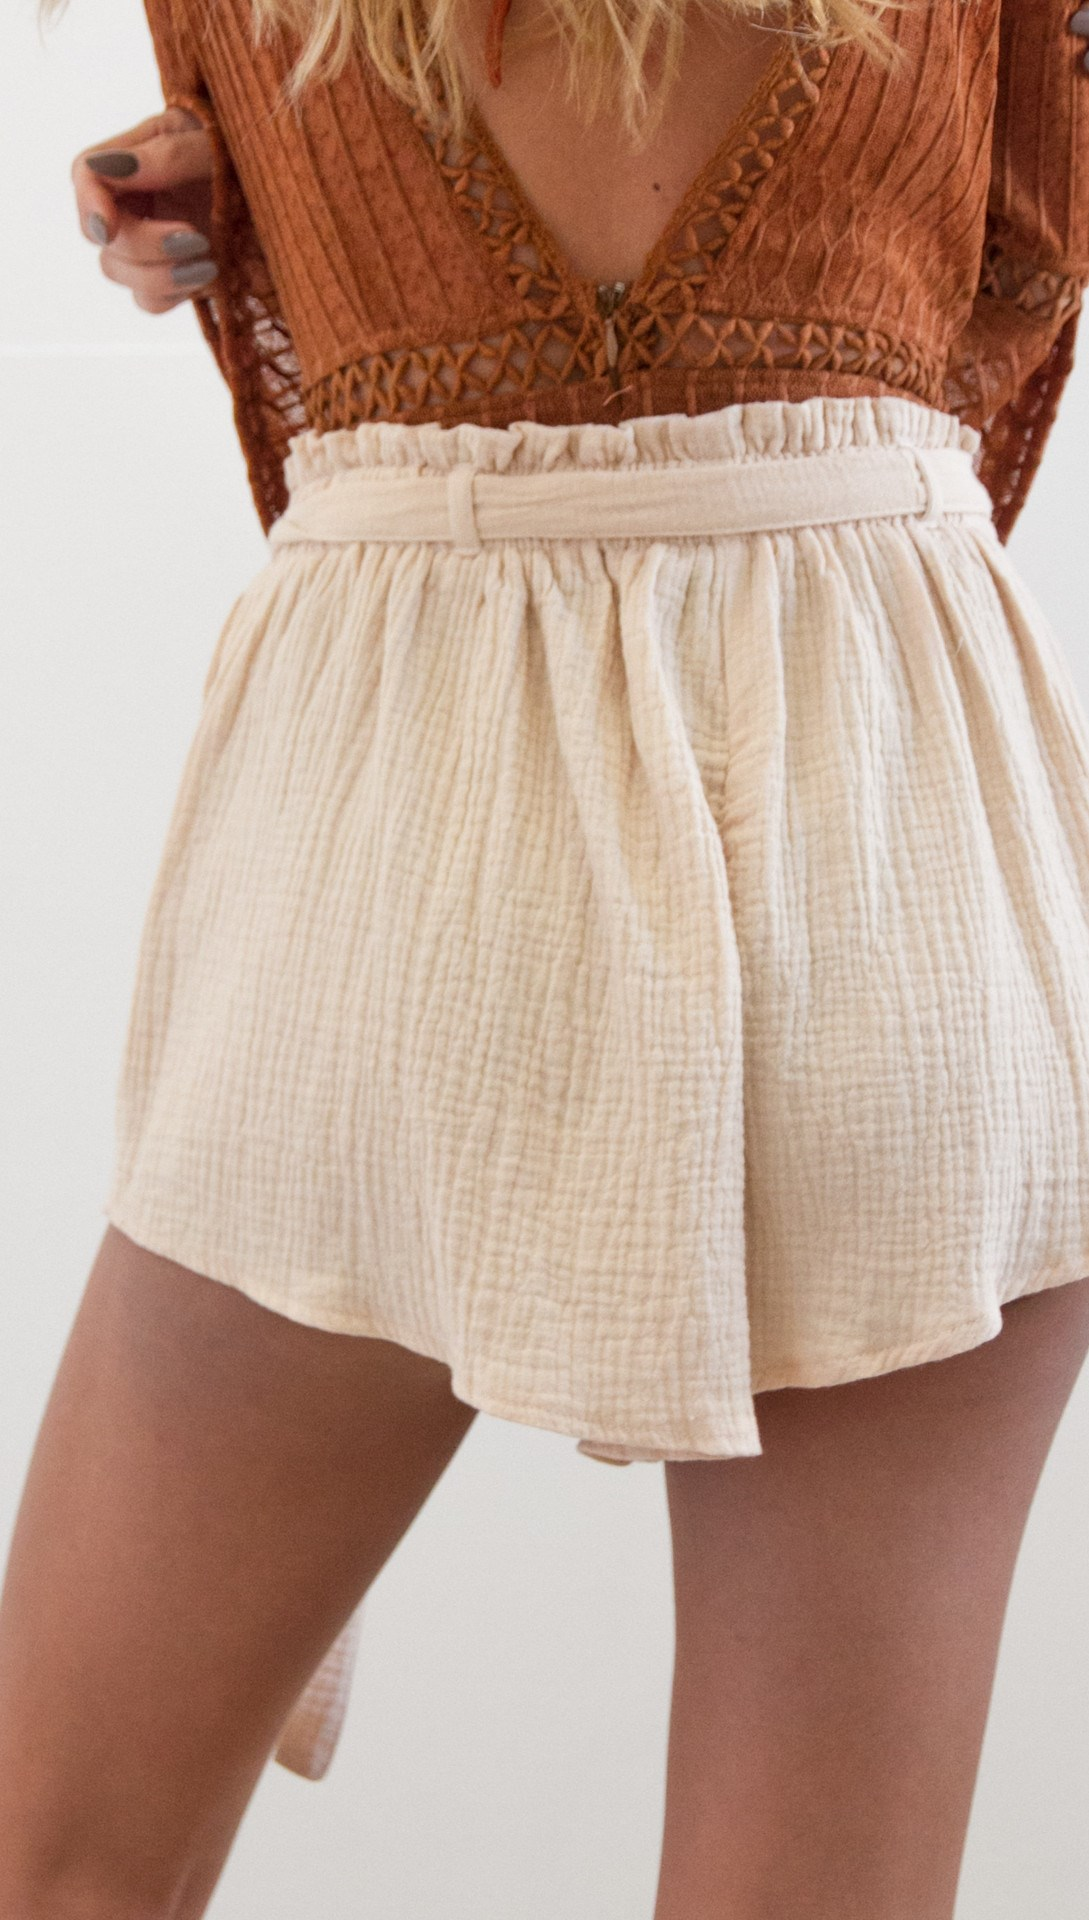 Pop Tide Nice Fashion Women Lace Up Casual Shorts Belt Solid Loose Shorts Sashes Elastic High Waist Summer Shorts - 4